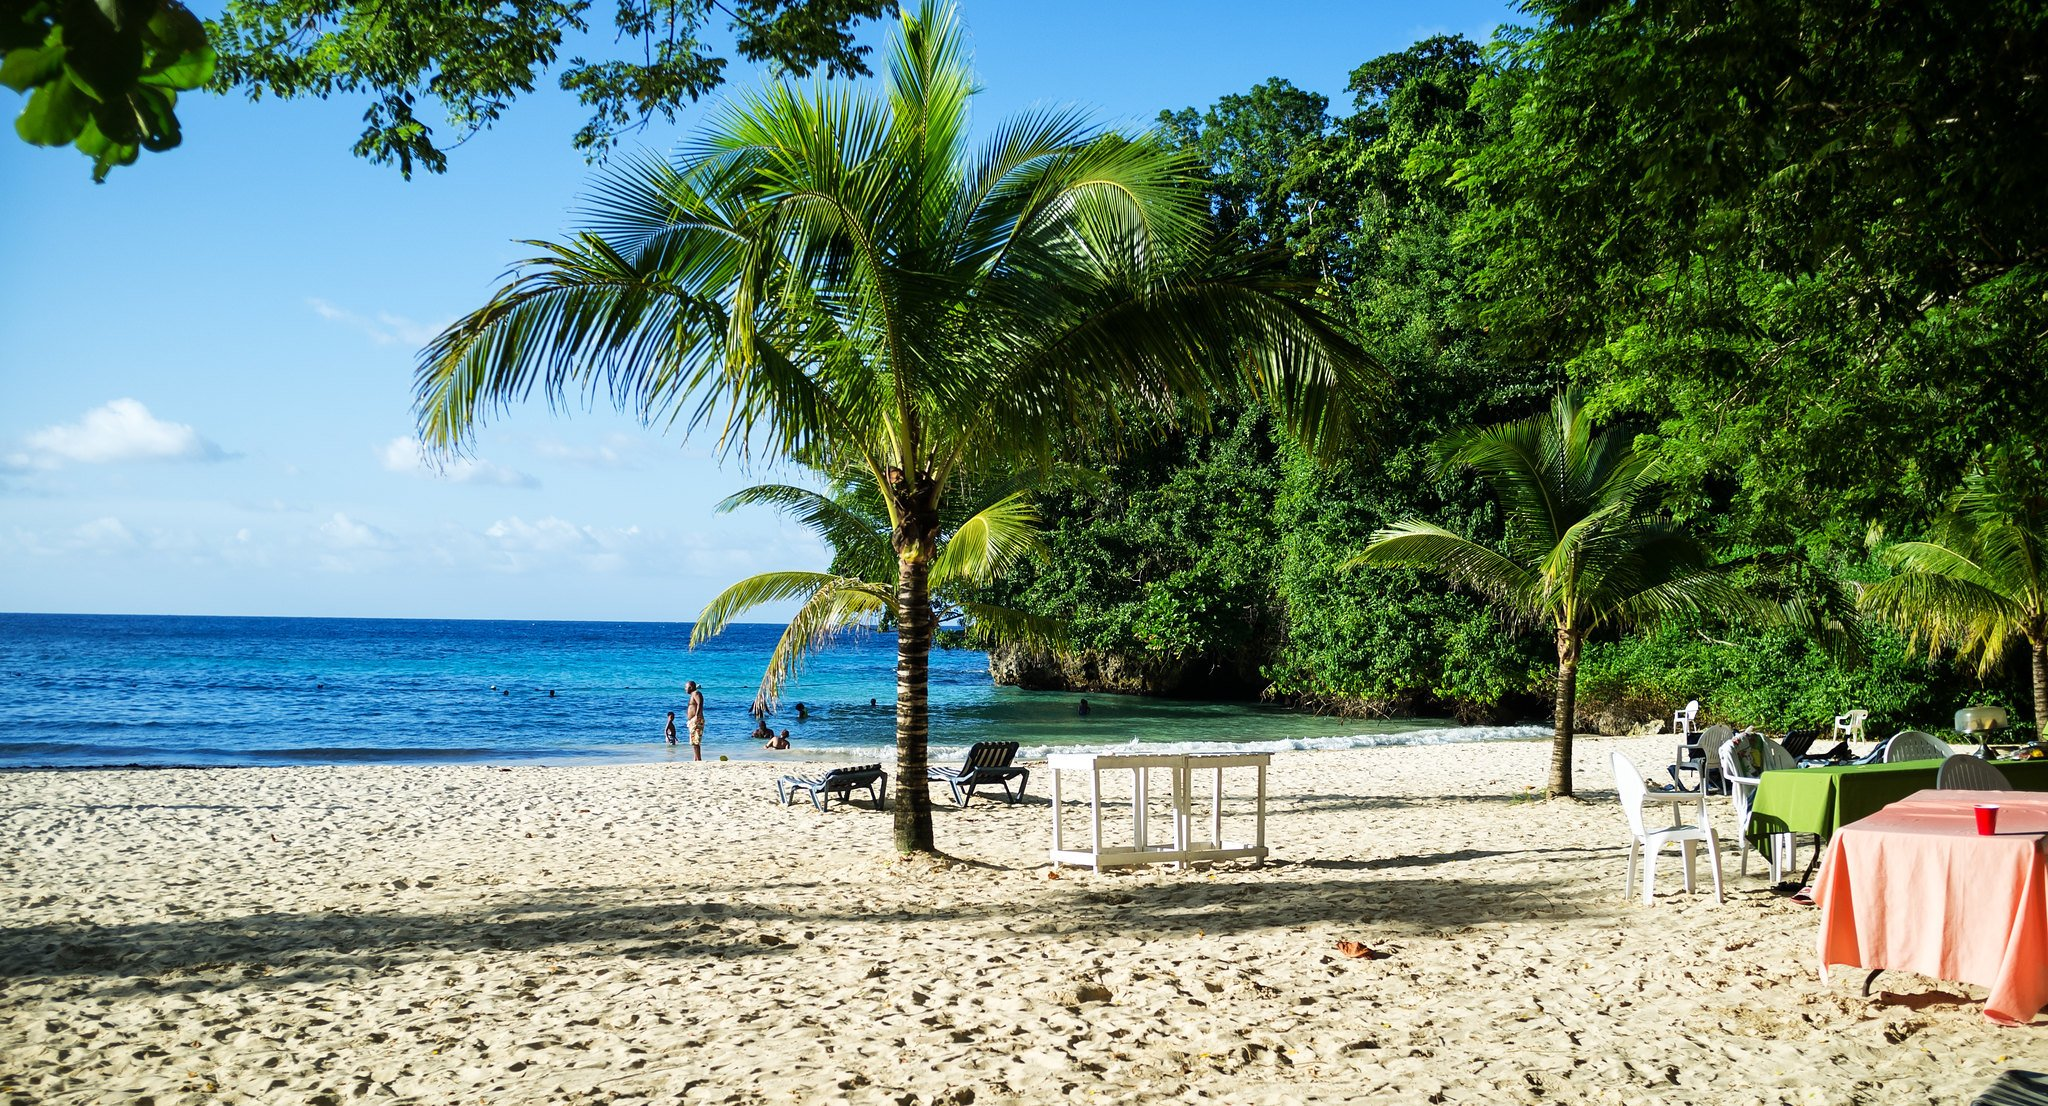 Best Beaches in Jamaica - Top 10 Beaches in Jamaica